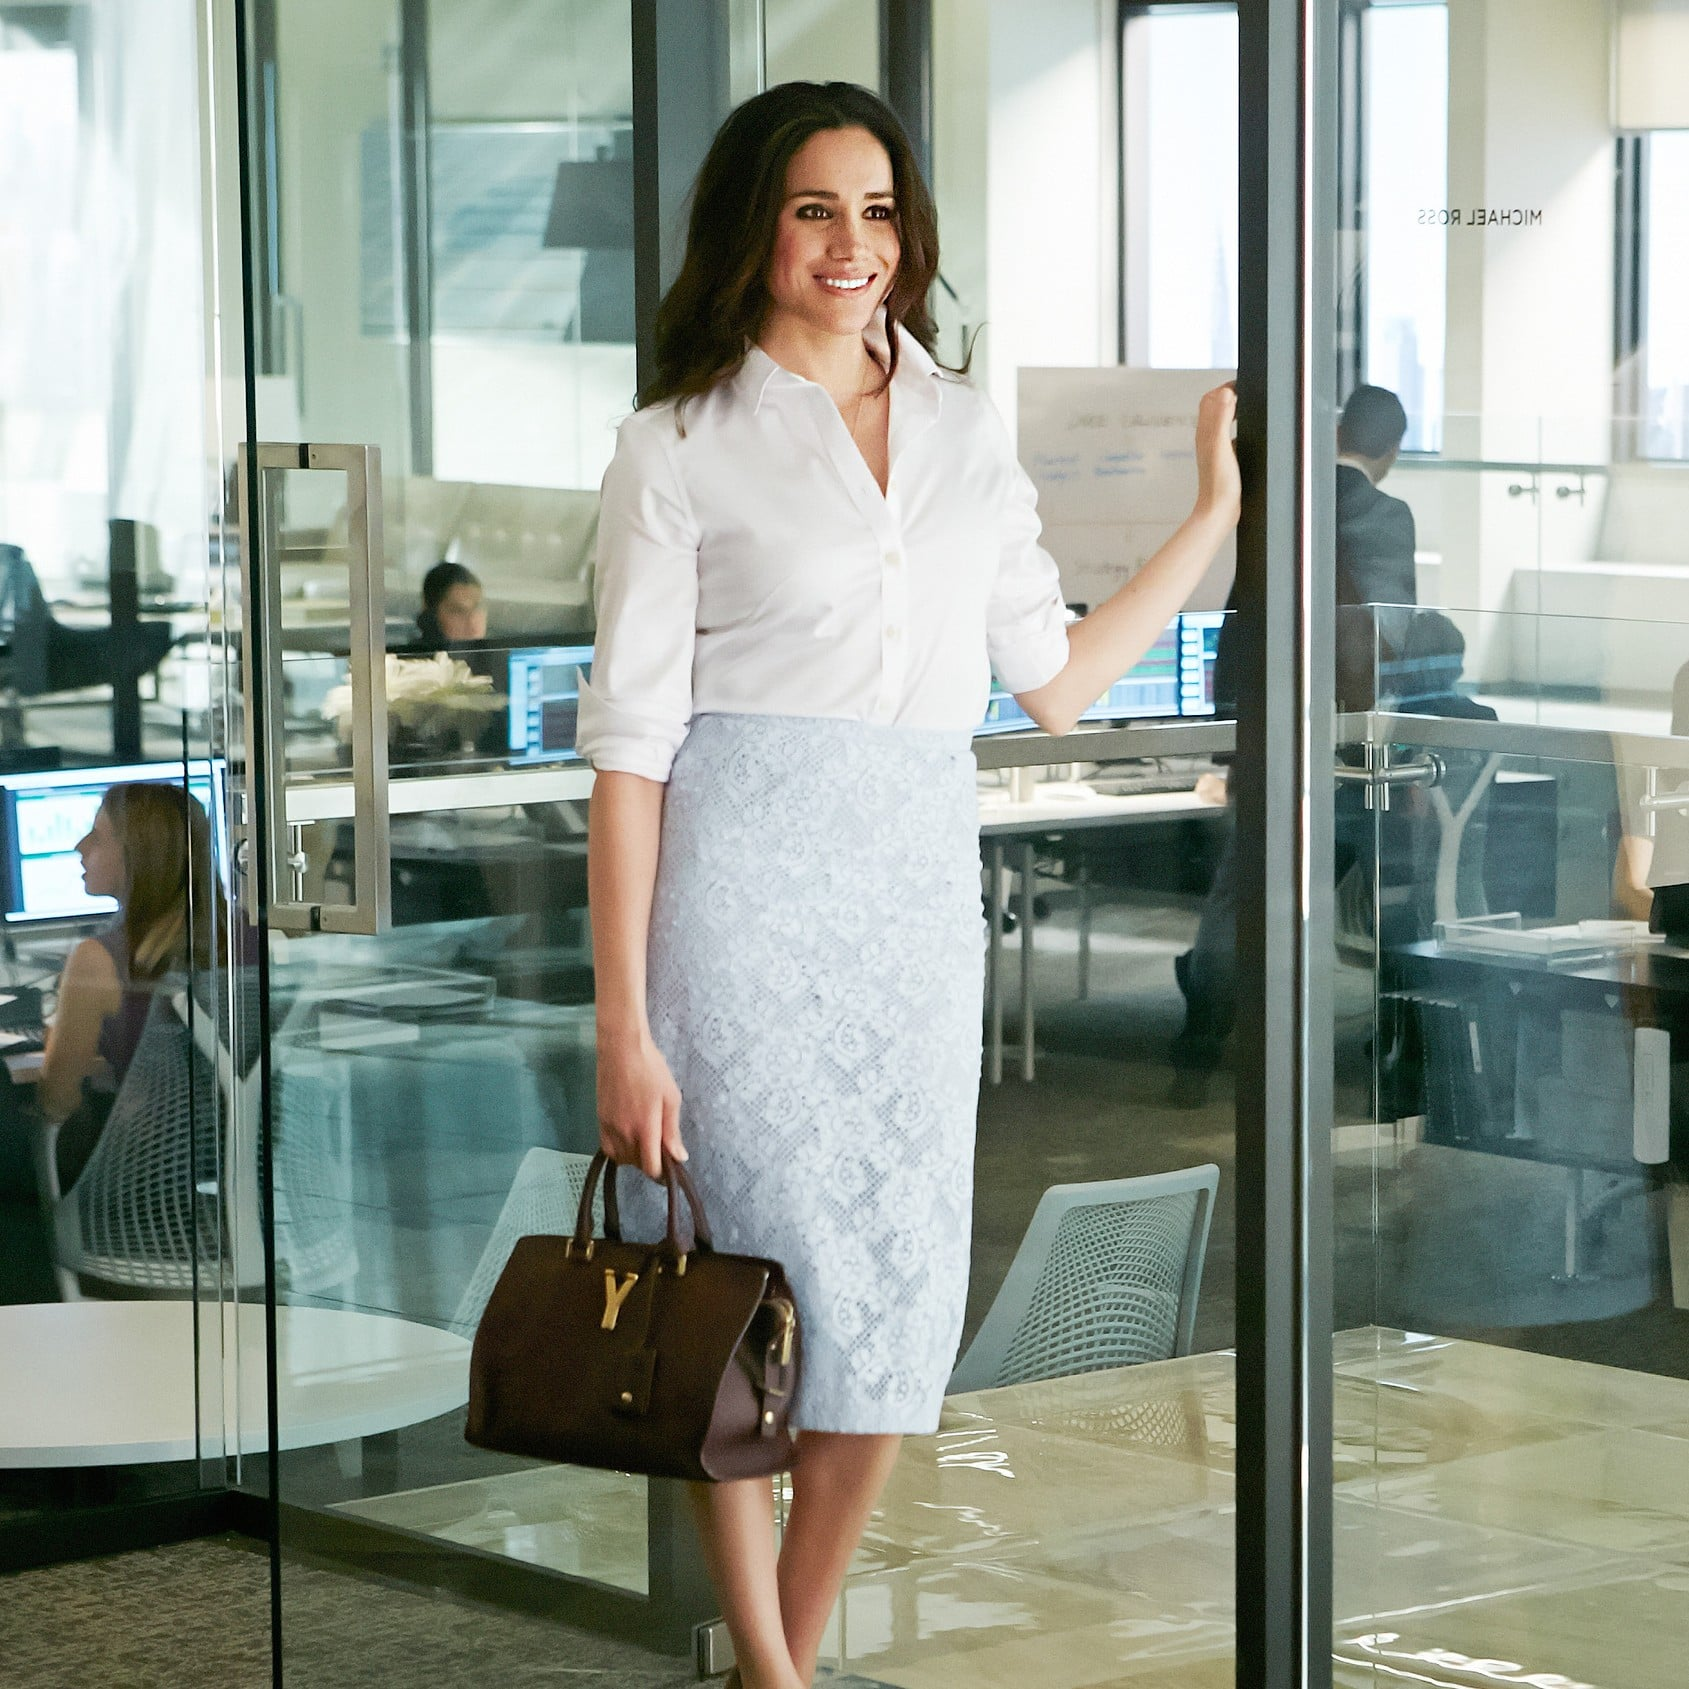 meghan markle on suits pictures popsugar entertainment meghan markle on suits pictures